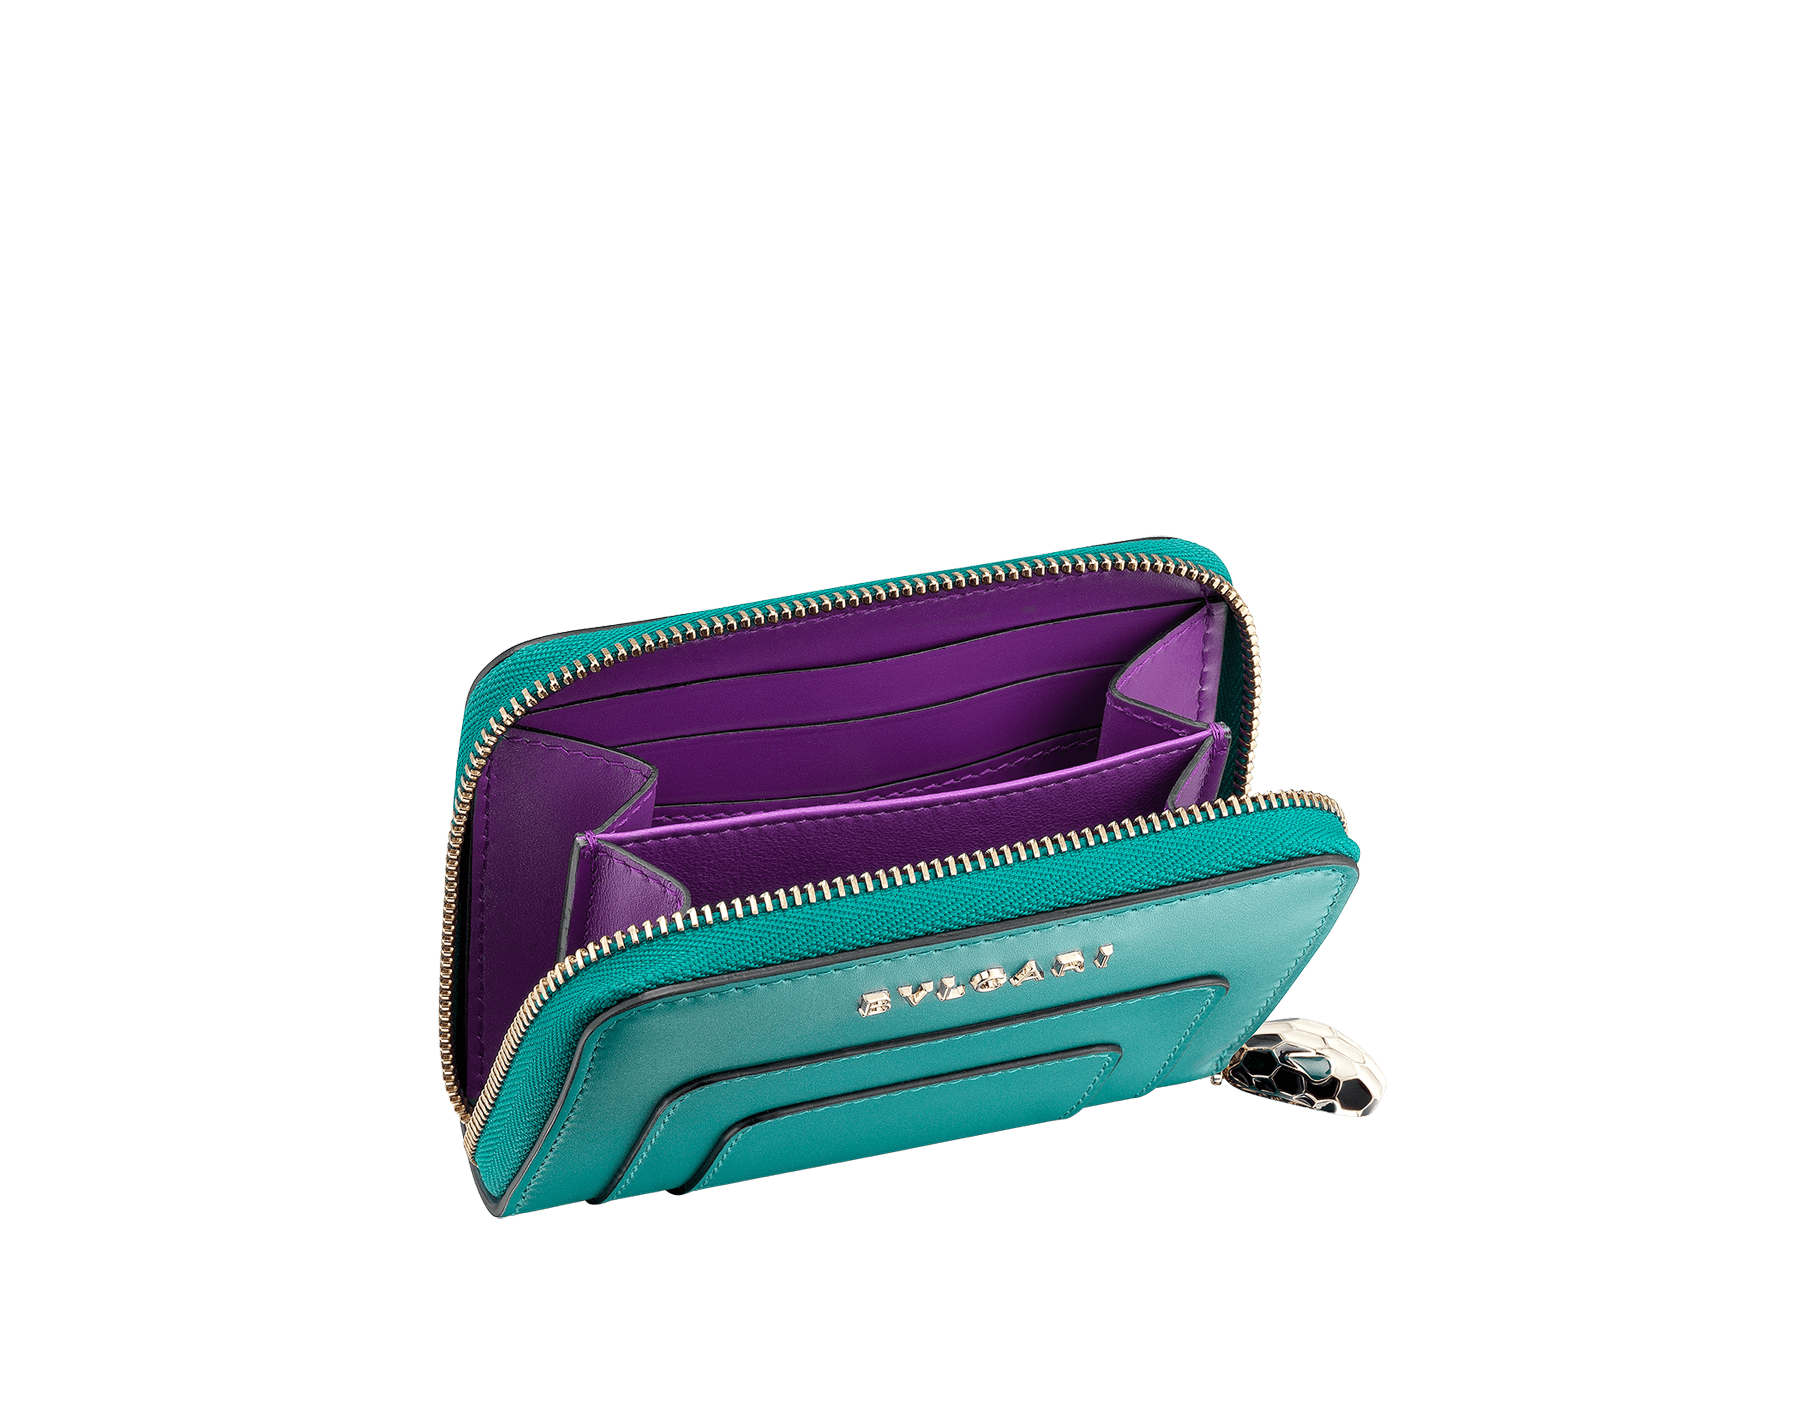 Serpenti Forever mini zipped wallet in arctic jade and grape amethyst calf leather. Iconic snakehead zip puller in black and white enamel with green enamel eyes. 288810 image 2